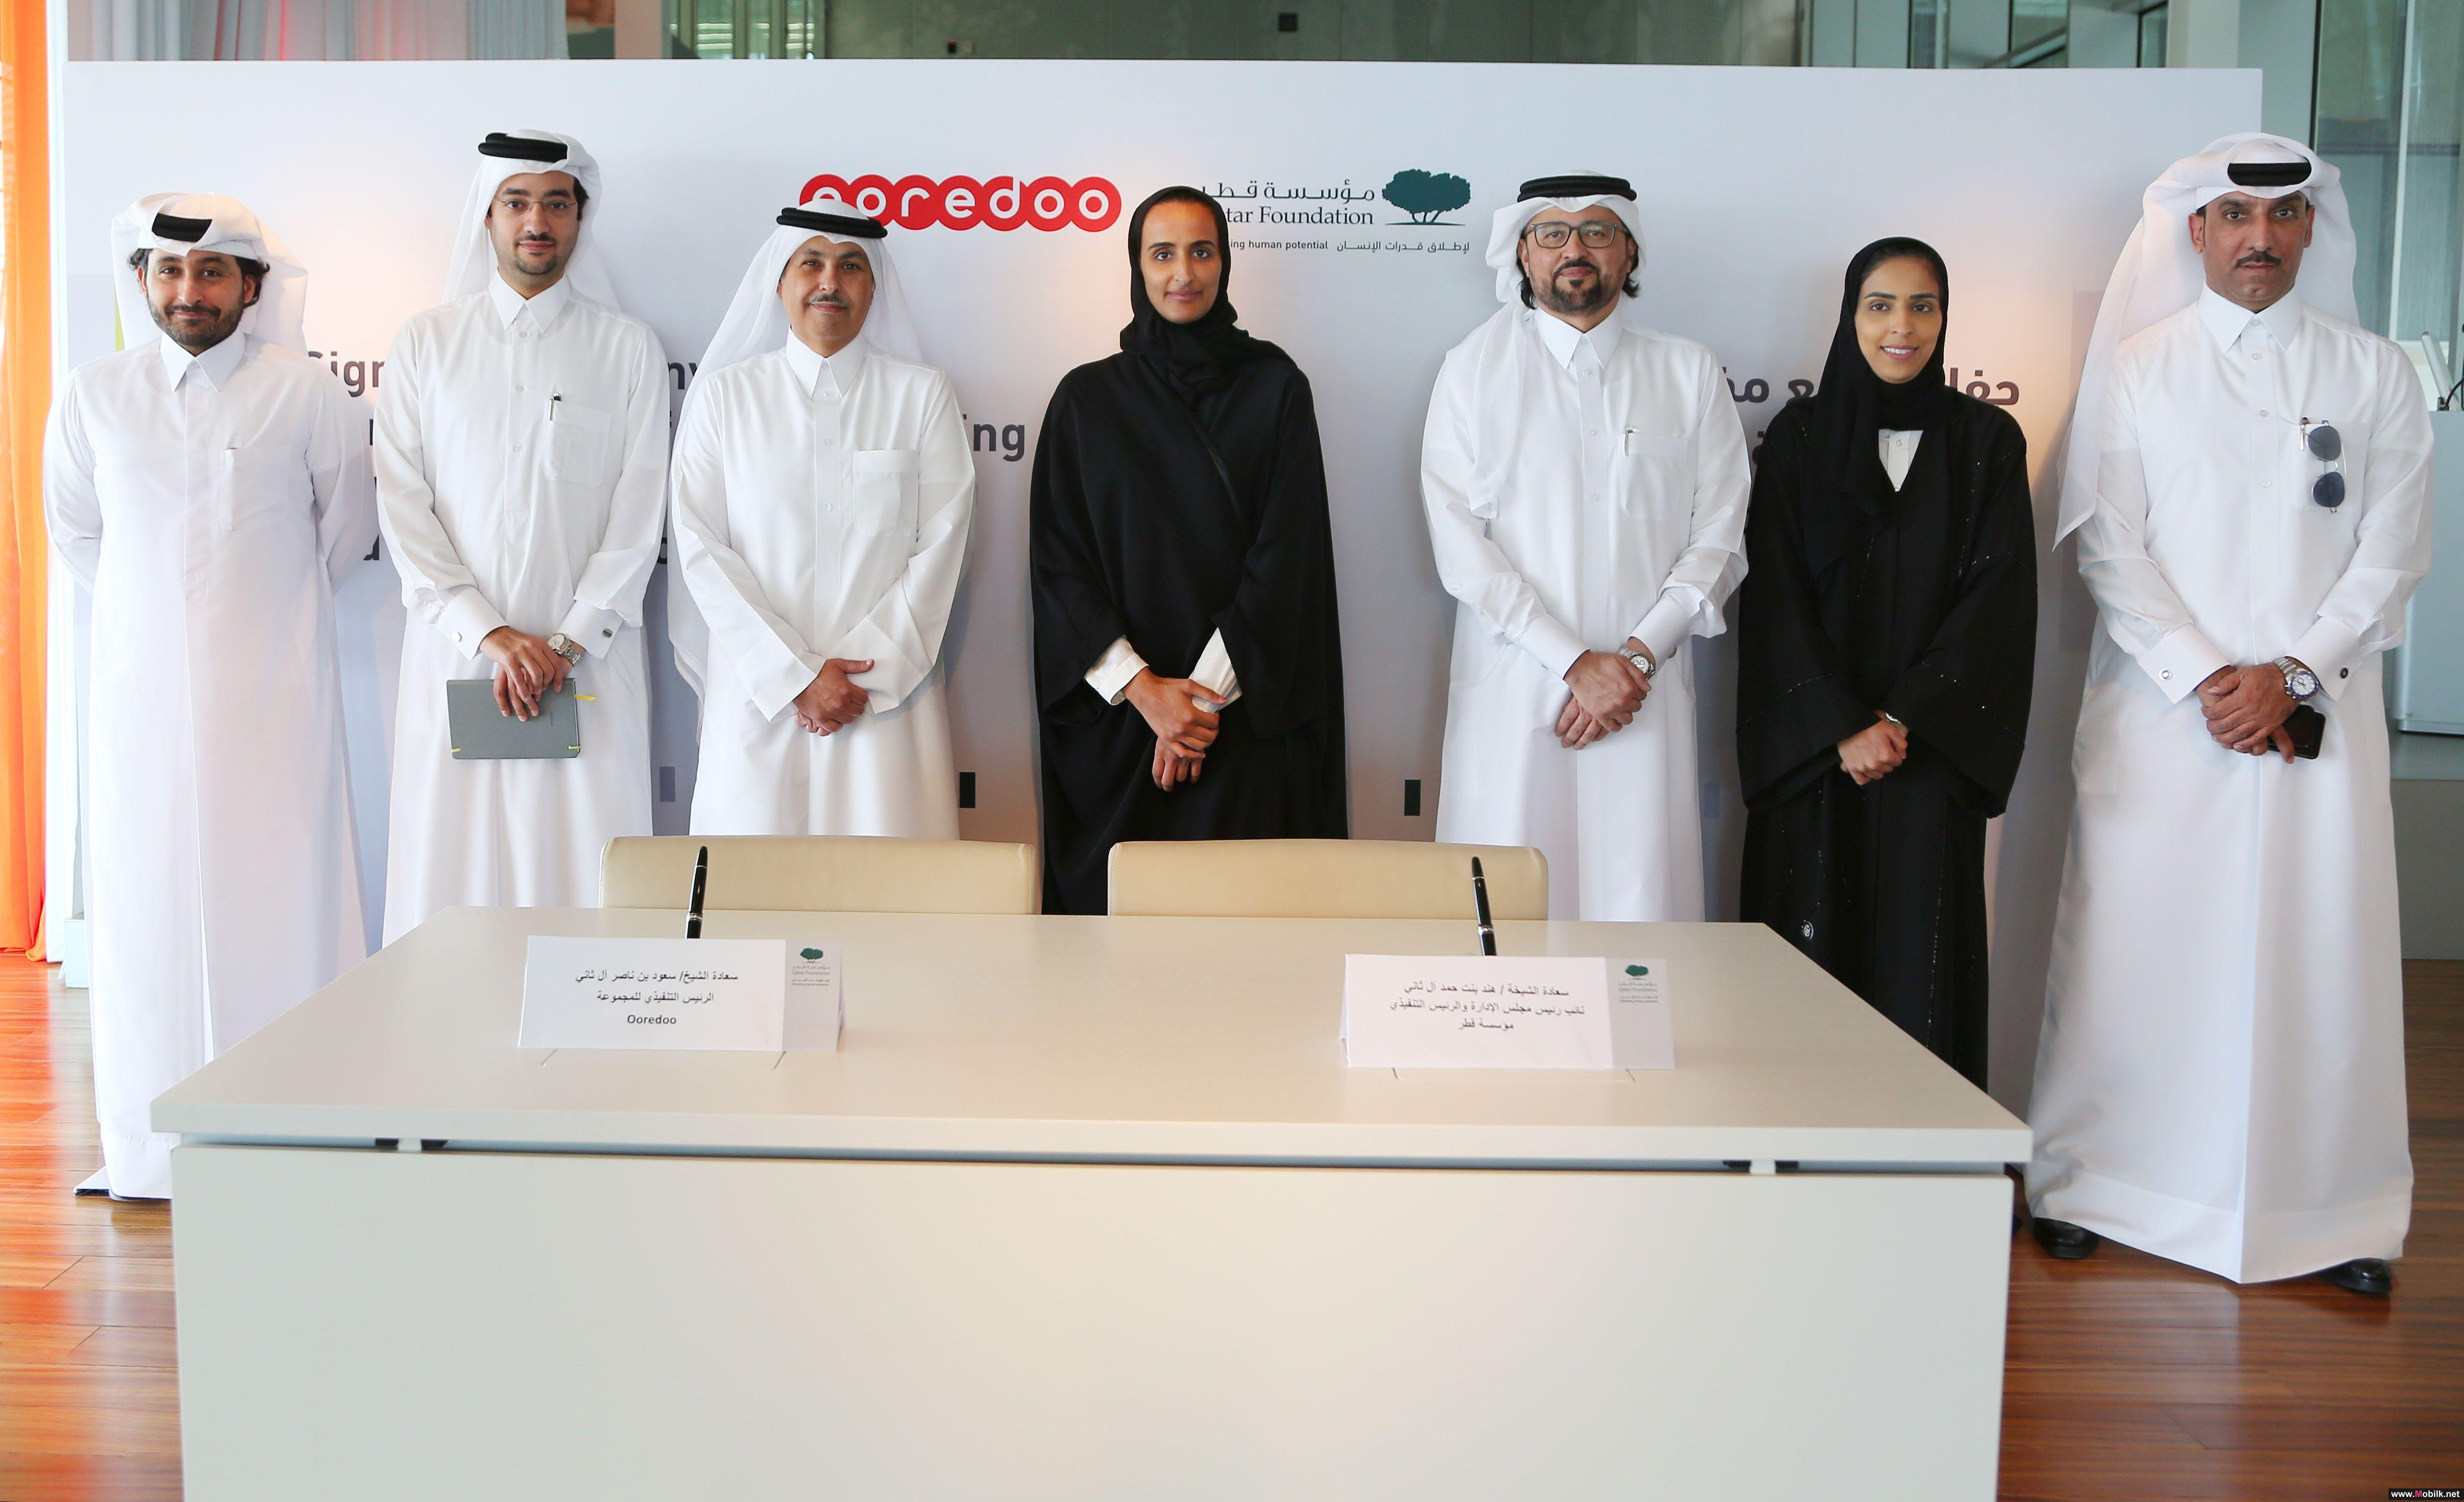 QF AND OOREDOO GROUP TO LAUNCH MAJOR NEW COLLABORATION INITIATIVE